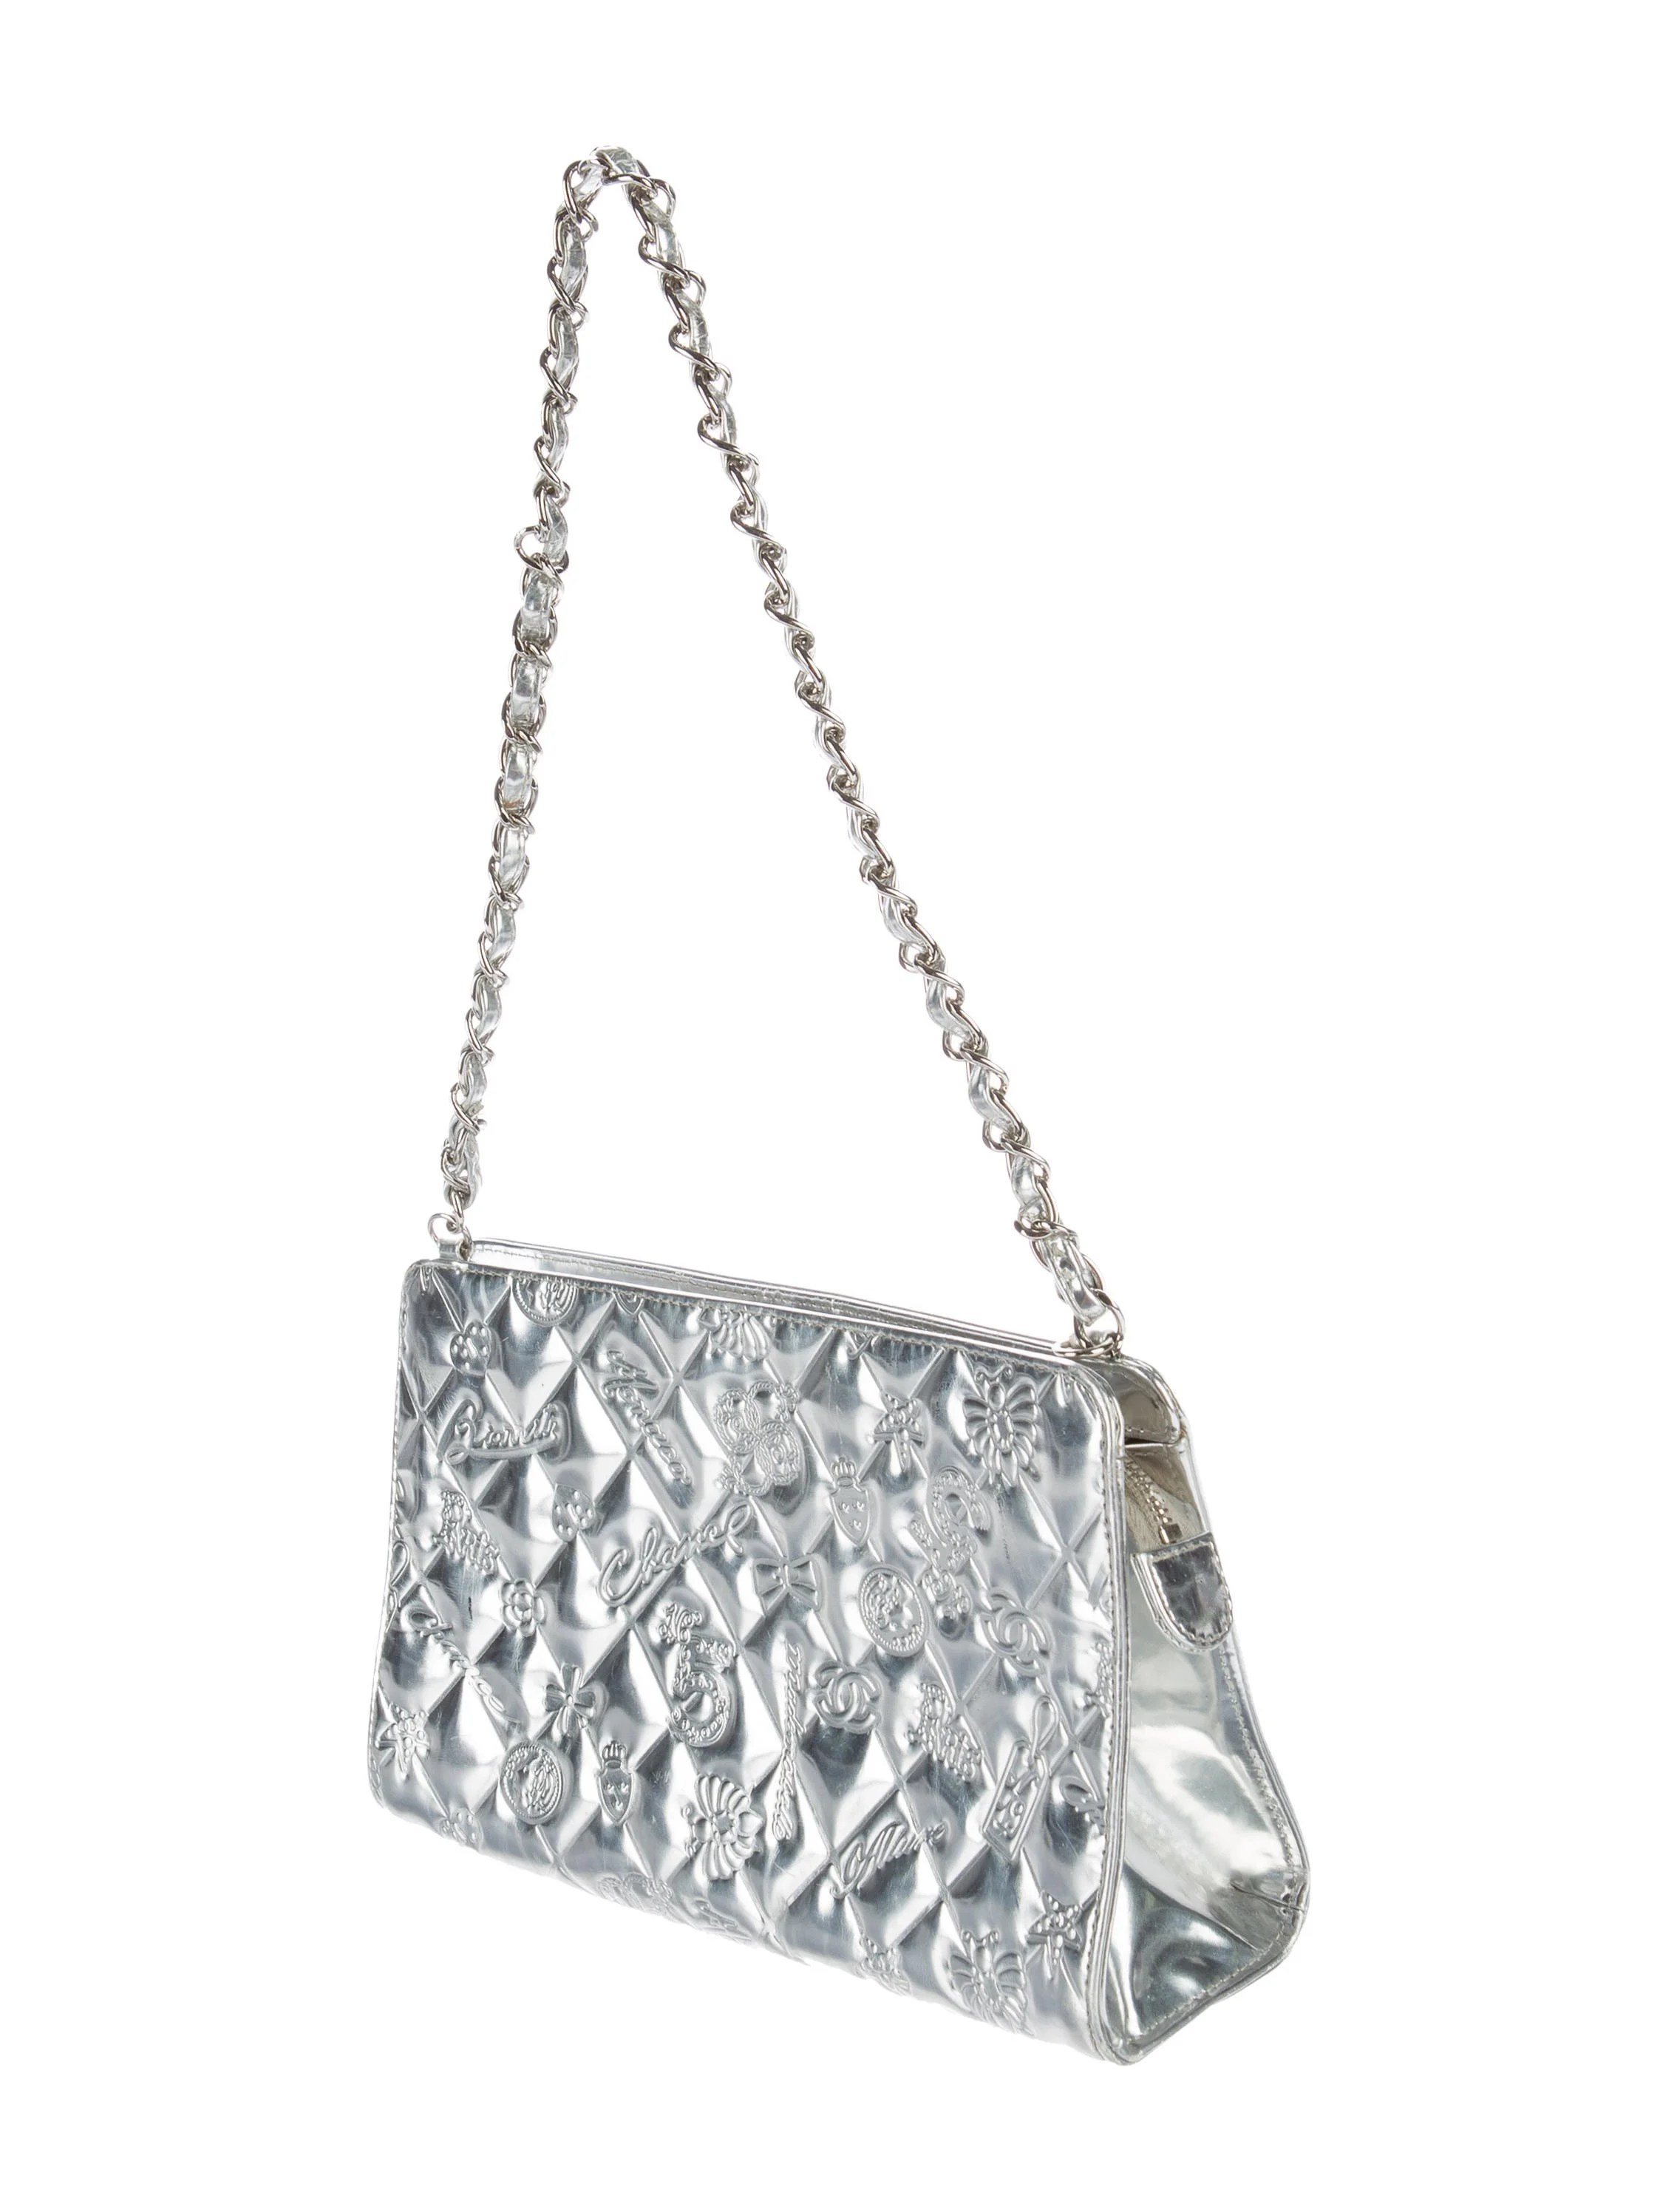 Chanel Precious Symbols Shoulder Bag